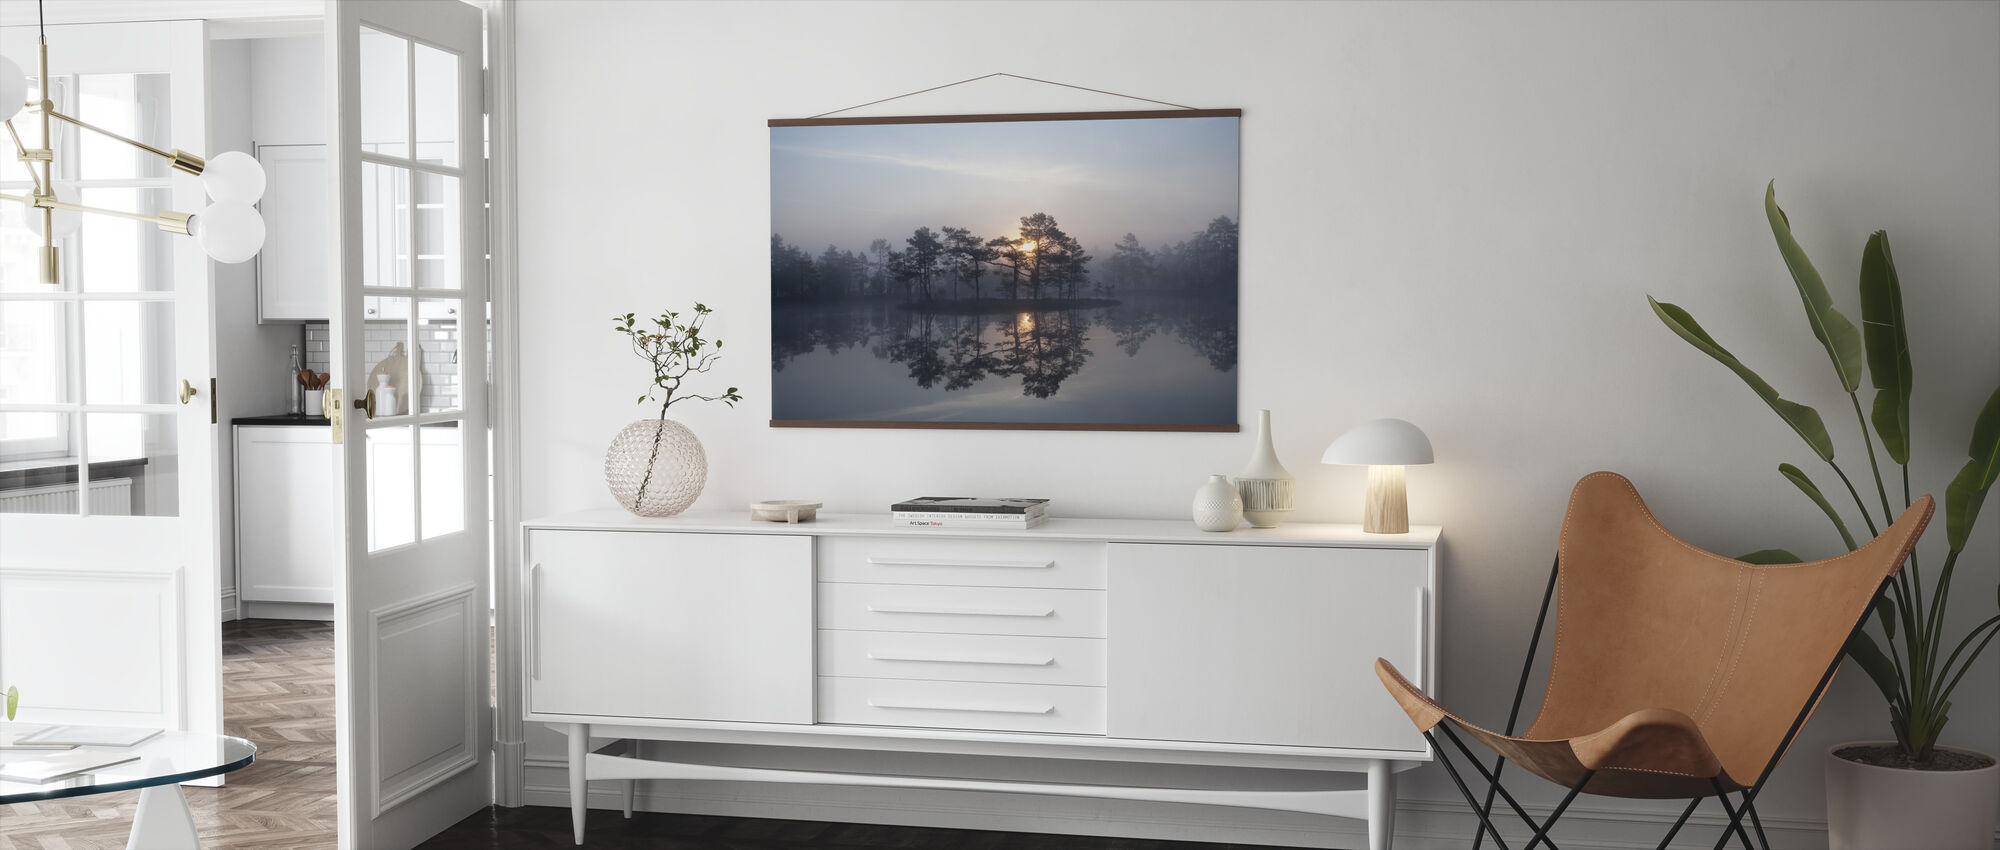 Enchanting Mist - Poster - Living Room